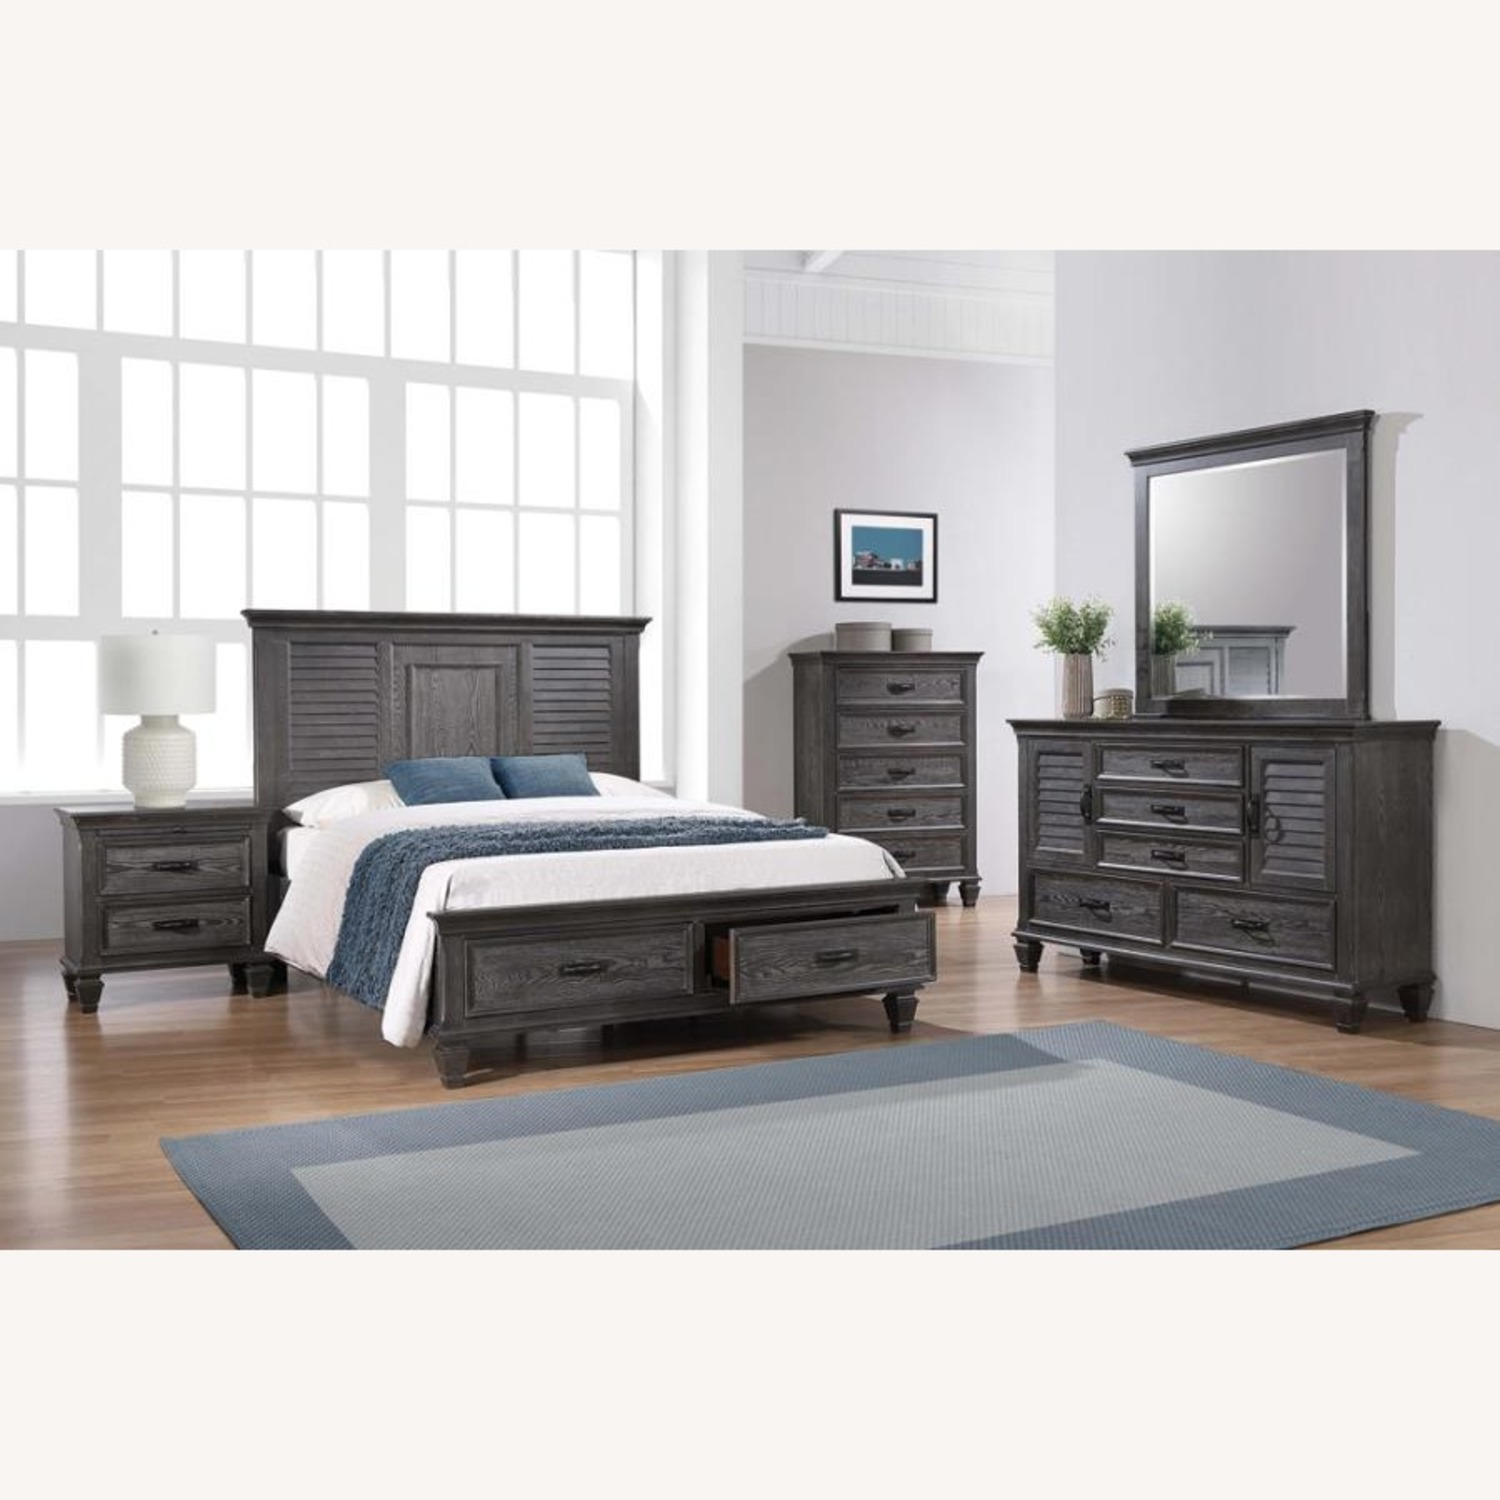 5-Drawer Chest In Weathered Sage Finish - image-2